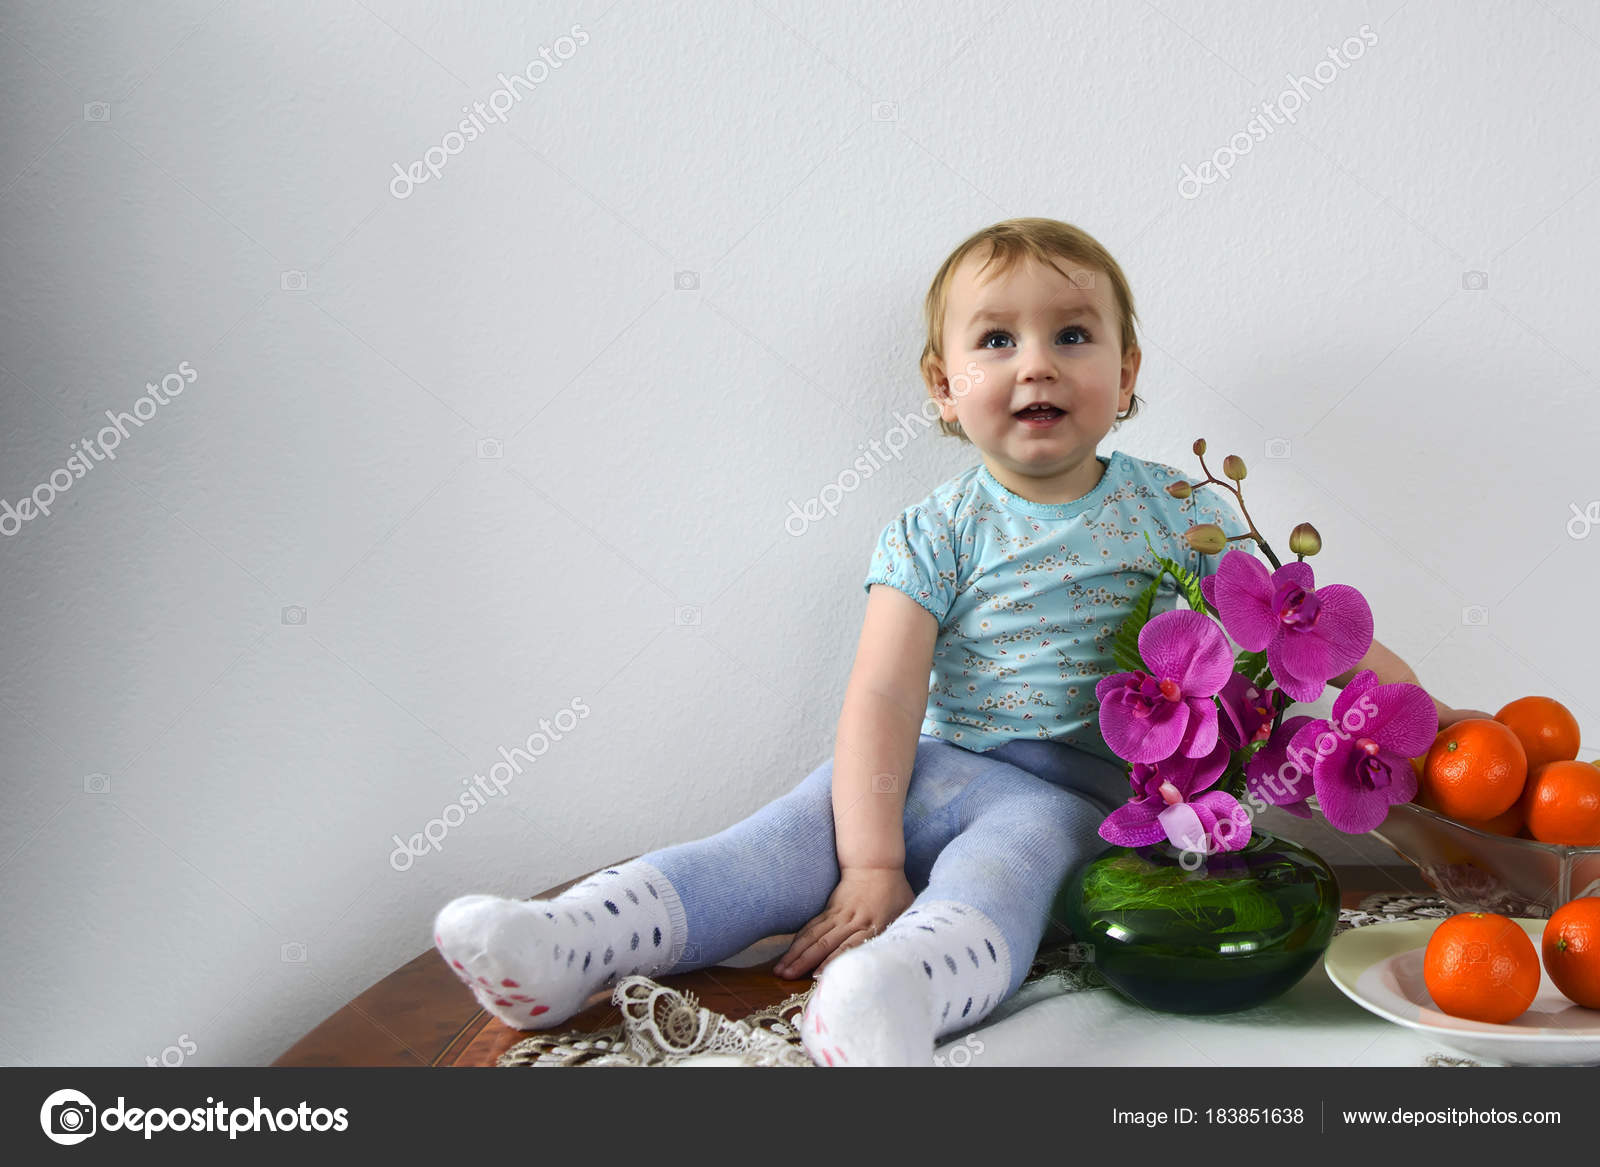 little cute baby girl sitting on a table next to a flower of orc